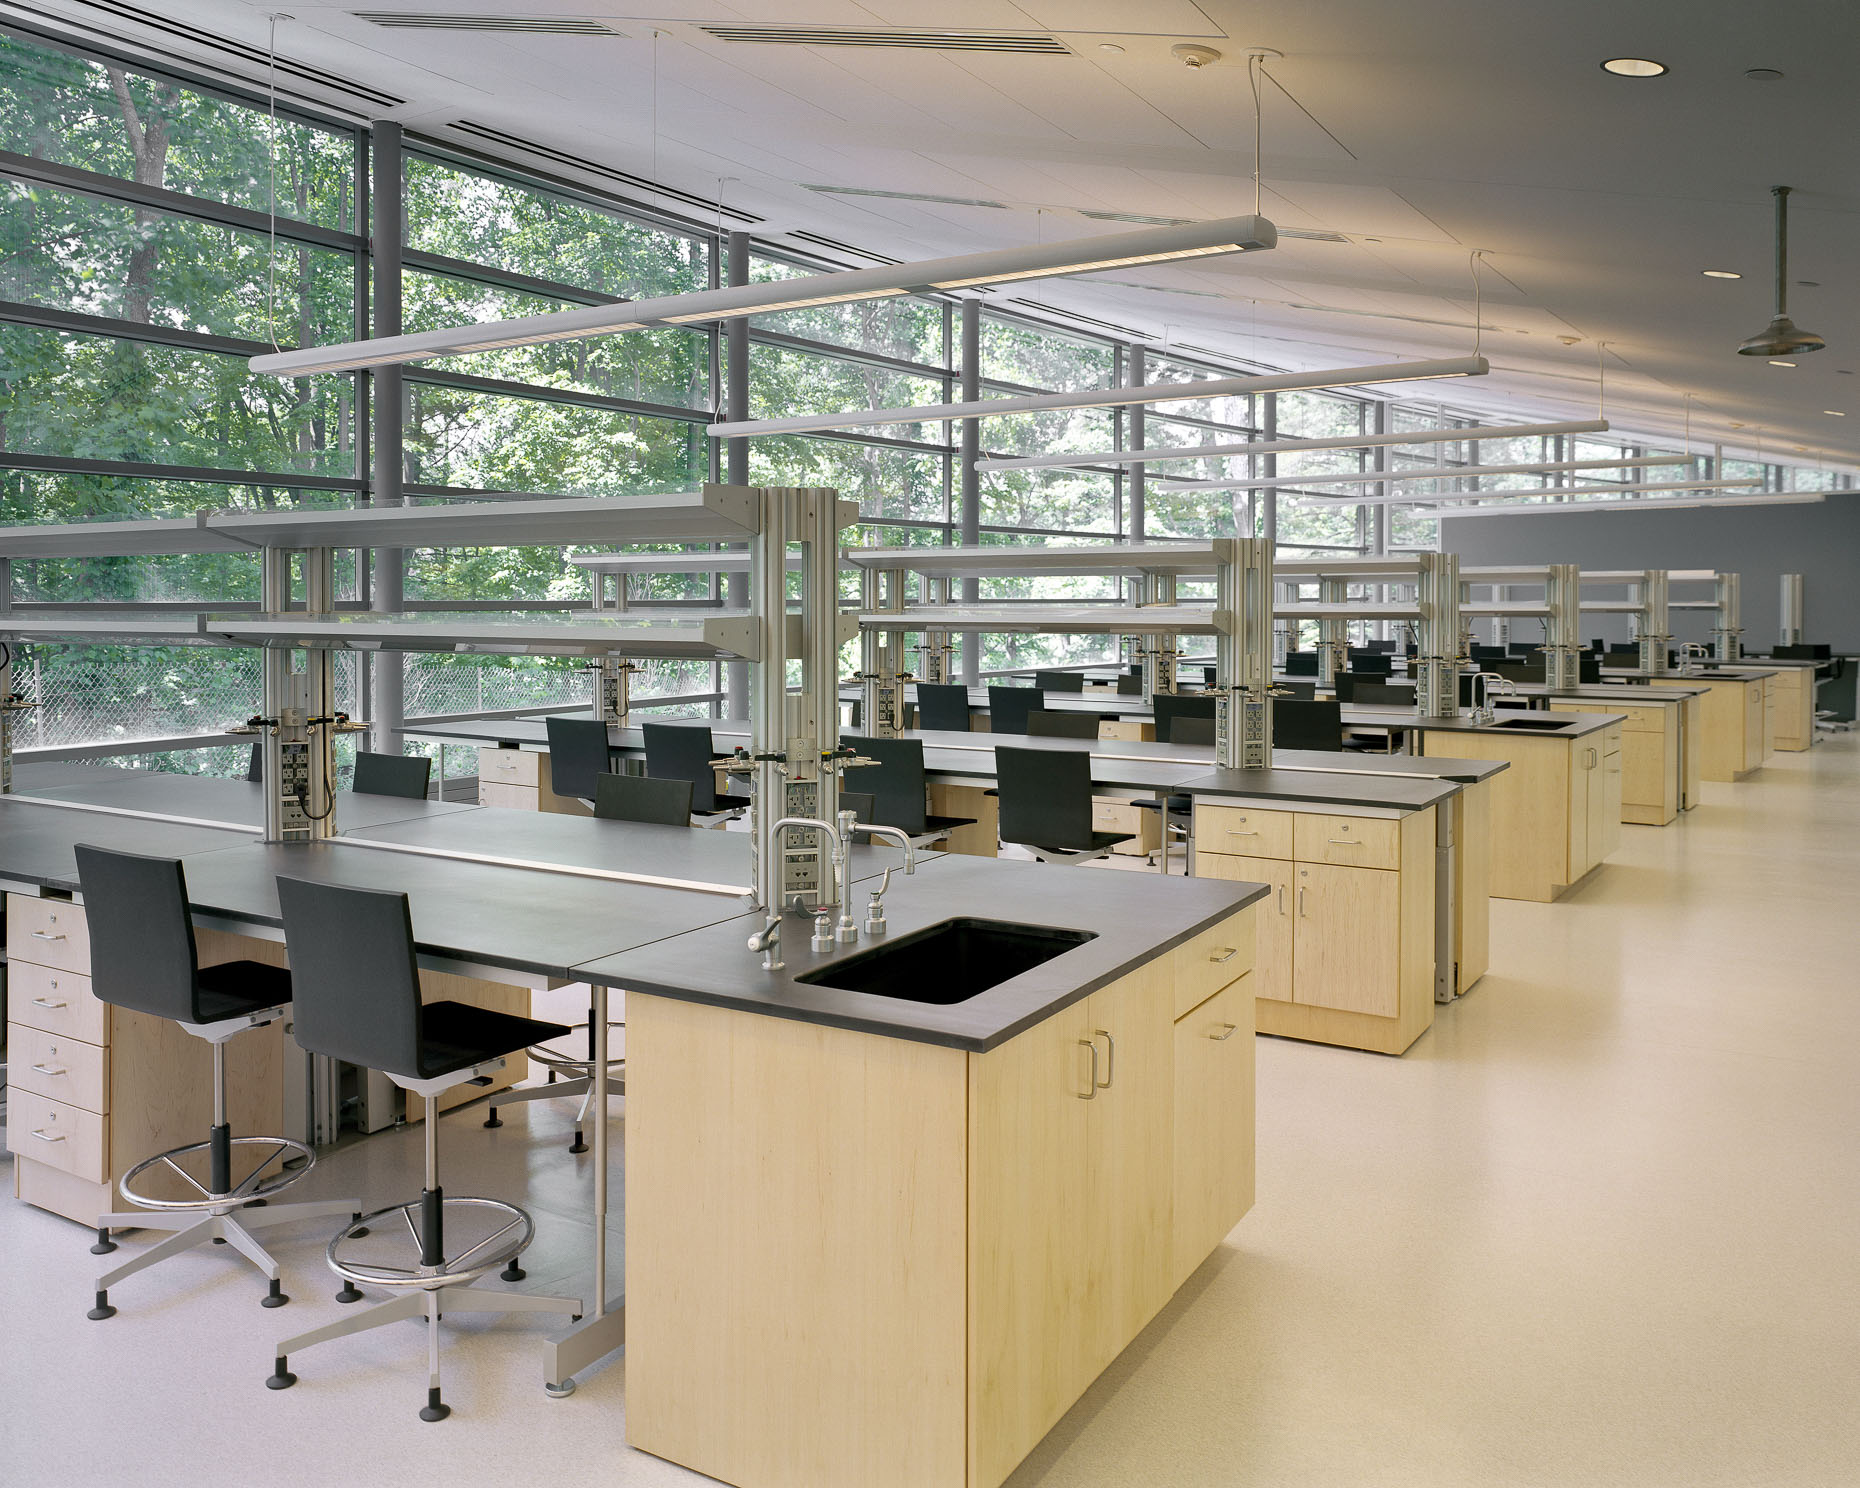 Center for Science & Computation at Bard College by Rafael Vinoly Architects